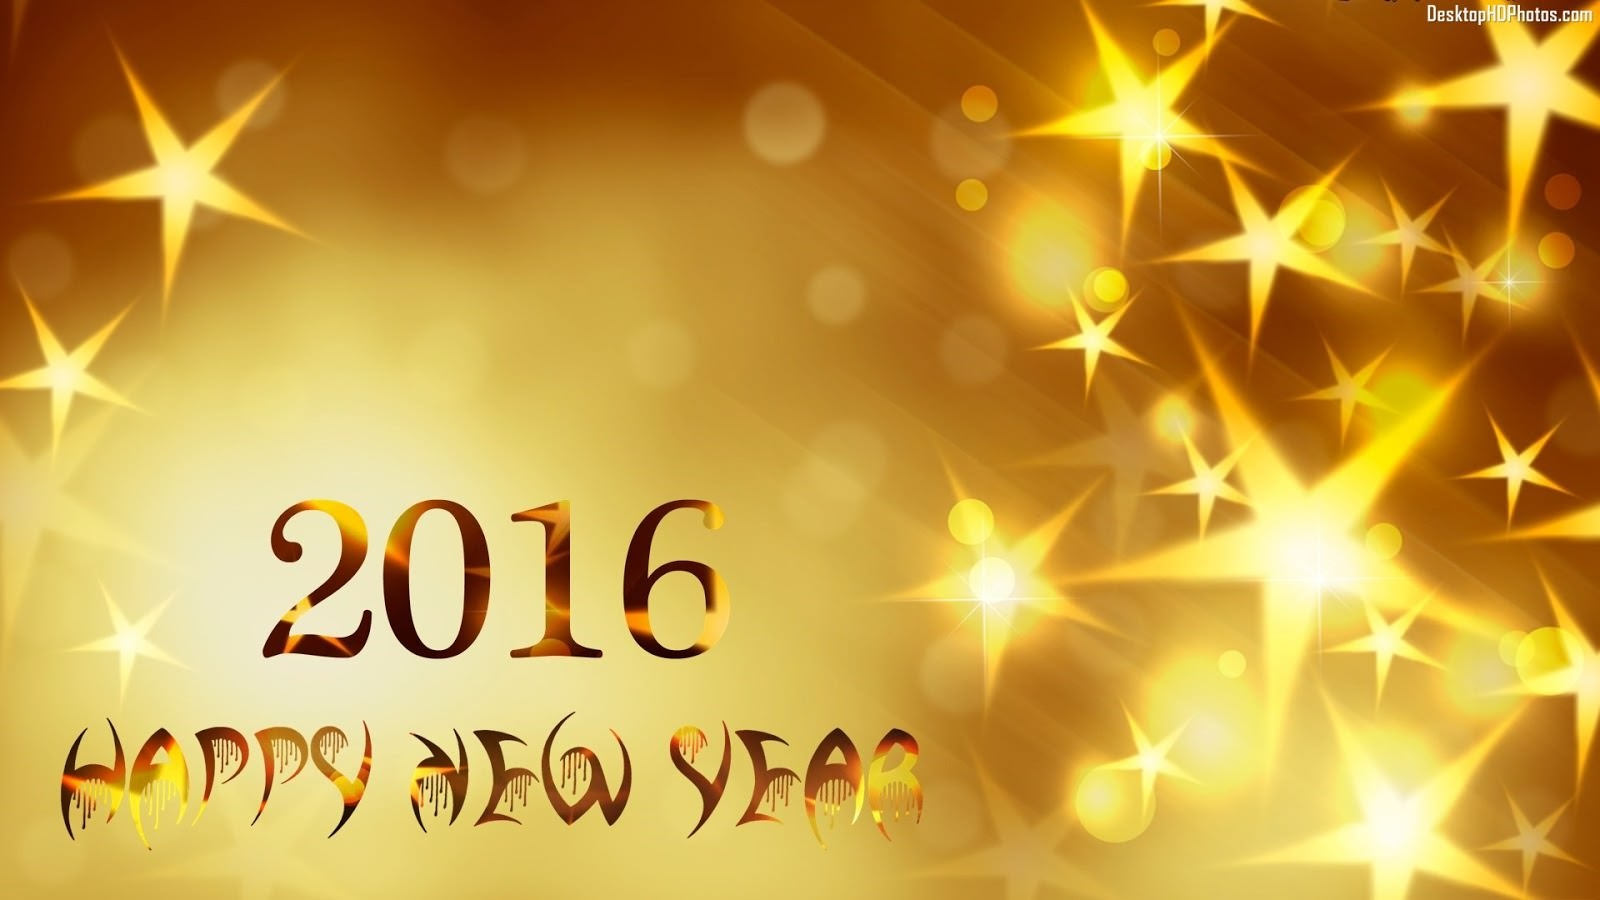 New-year-2016-wallpapers-in-HD-7